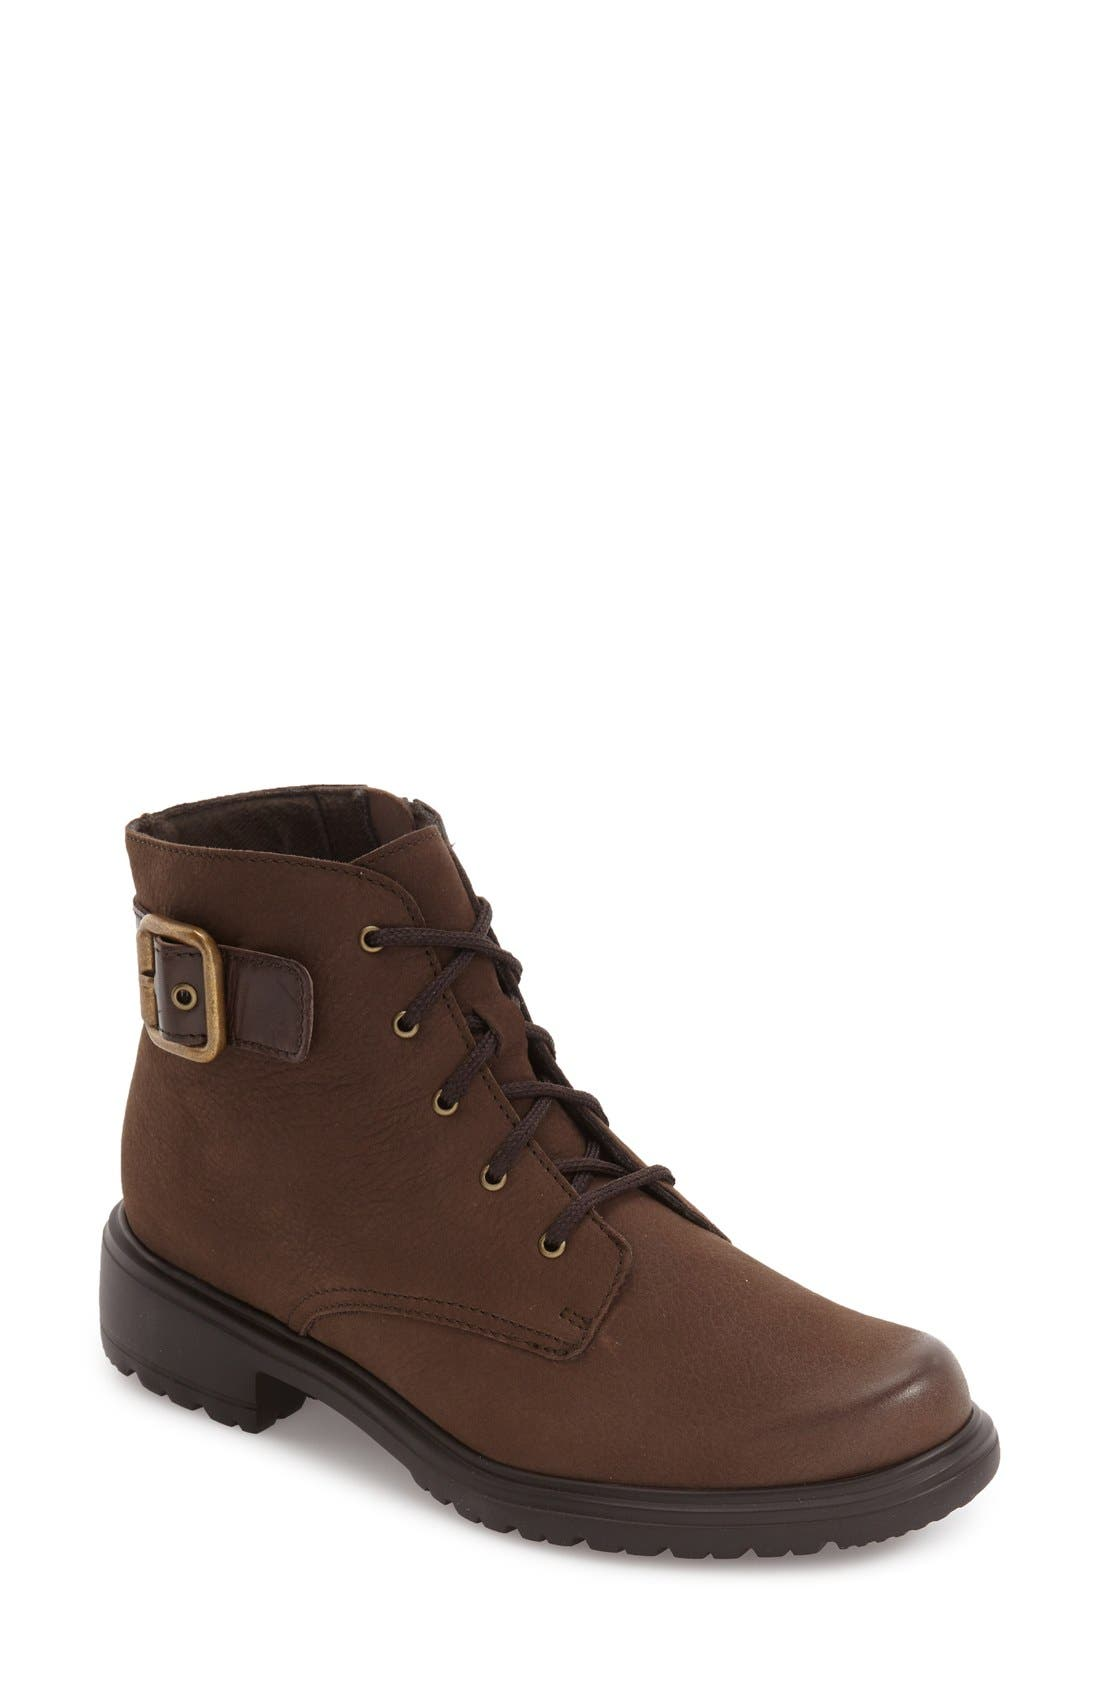 Bradley Water Resistant Boot,                         Main,                         color, Brown Tumbled Nubuck Leather